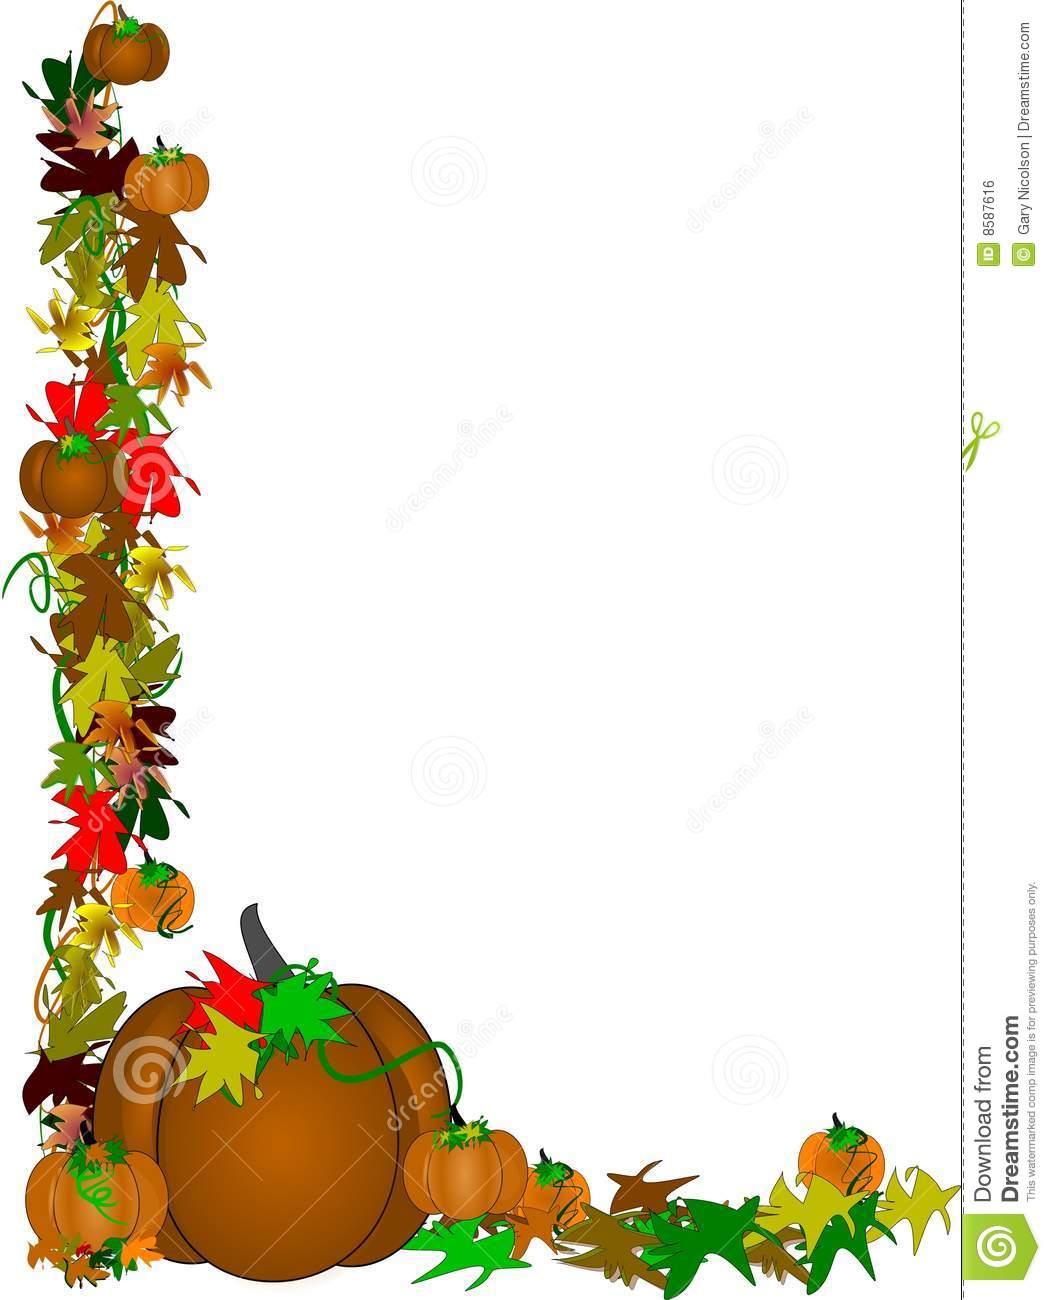 Brown Pumpkin Border Design Stock Photo Image Of